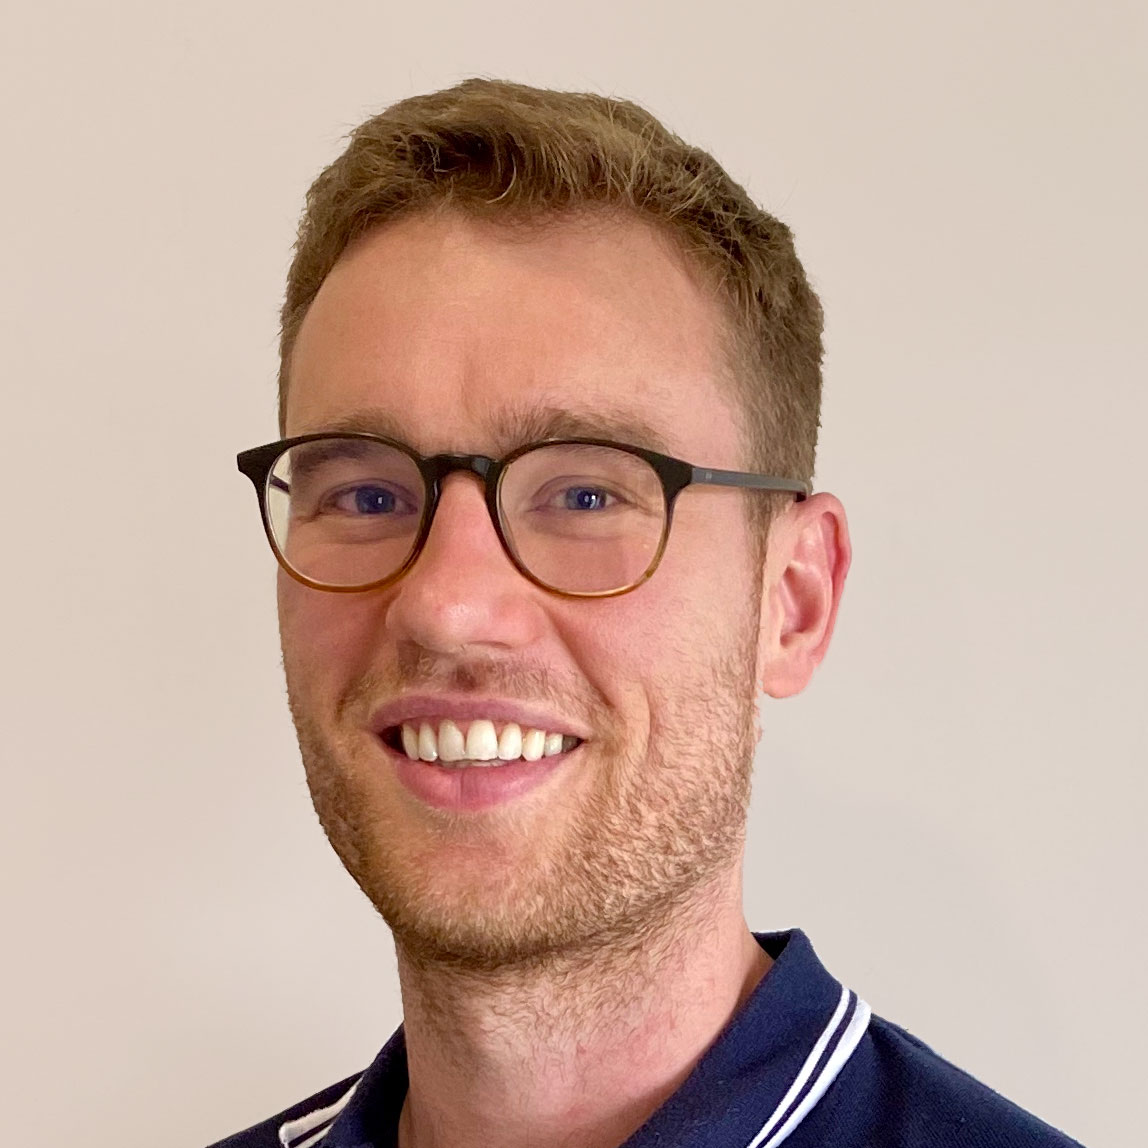 Michael Ingle - Brisbane Musculoskeletal Physiotherapist